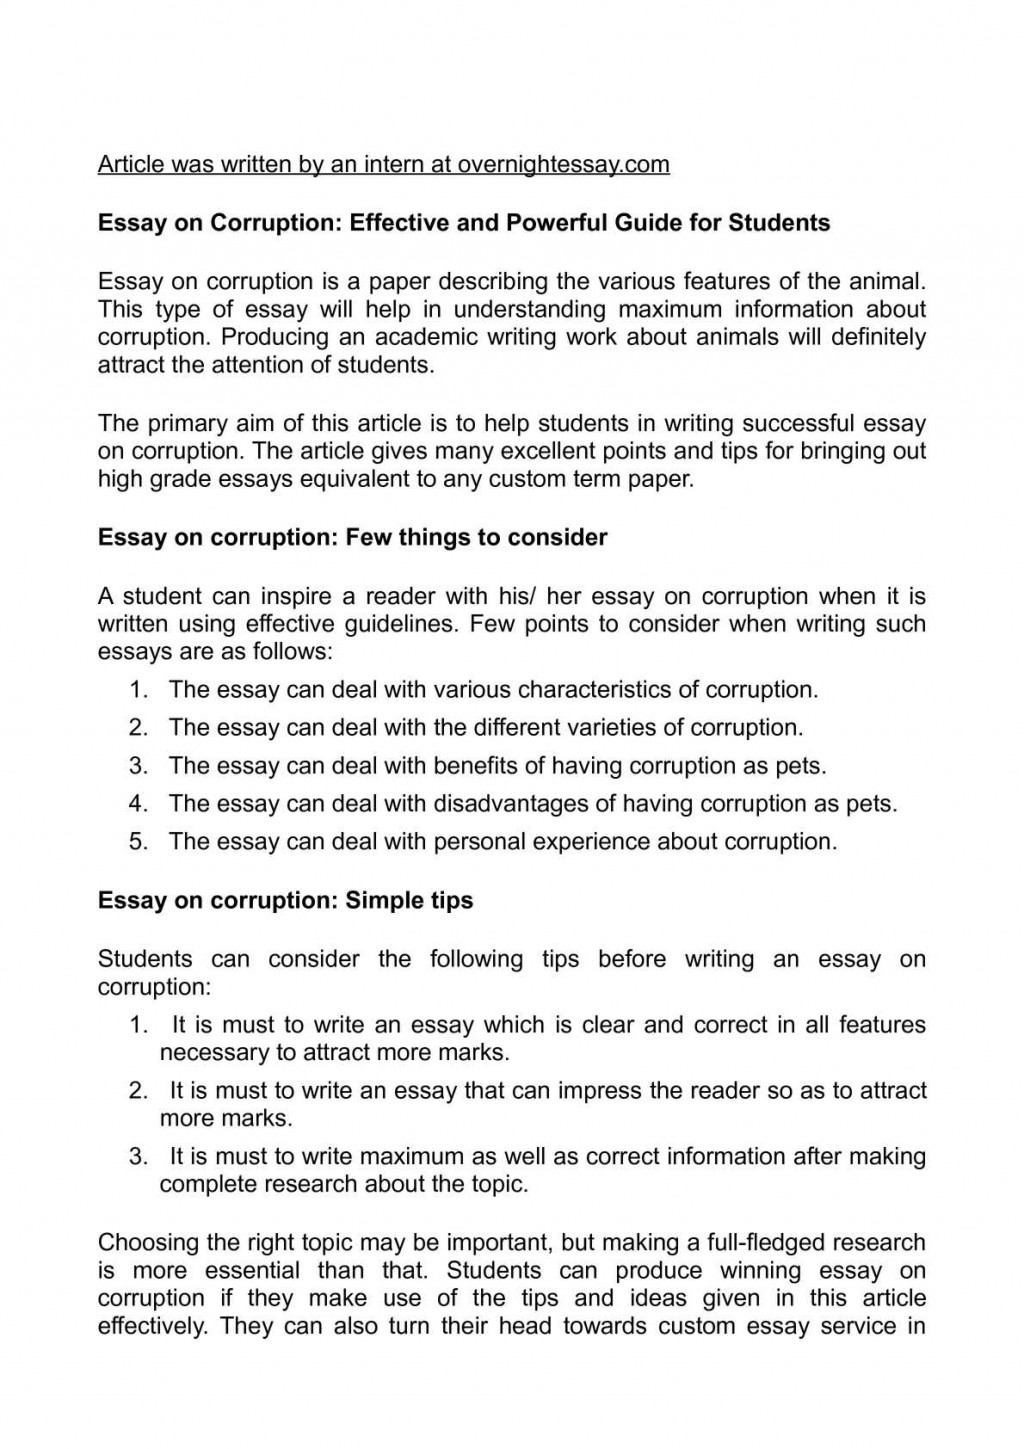 014 Reflective Essay Rubric Example Correct Writing Examples Topics Proper Form Marvelous Week 2 Guidelines With Scoring Marking Assessment Large